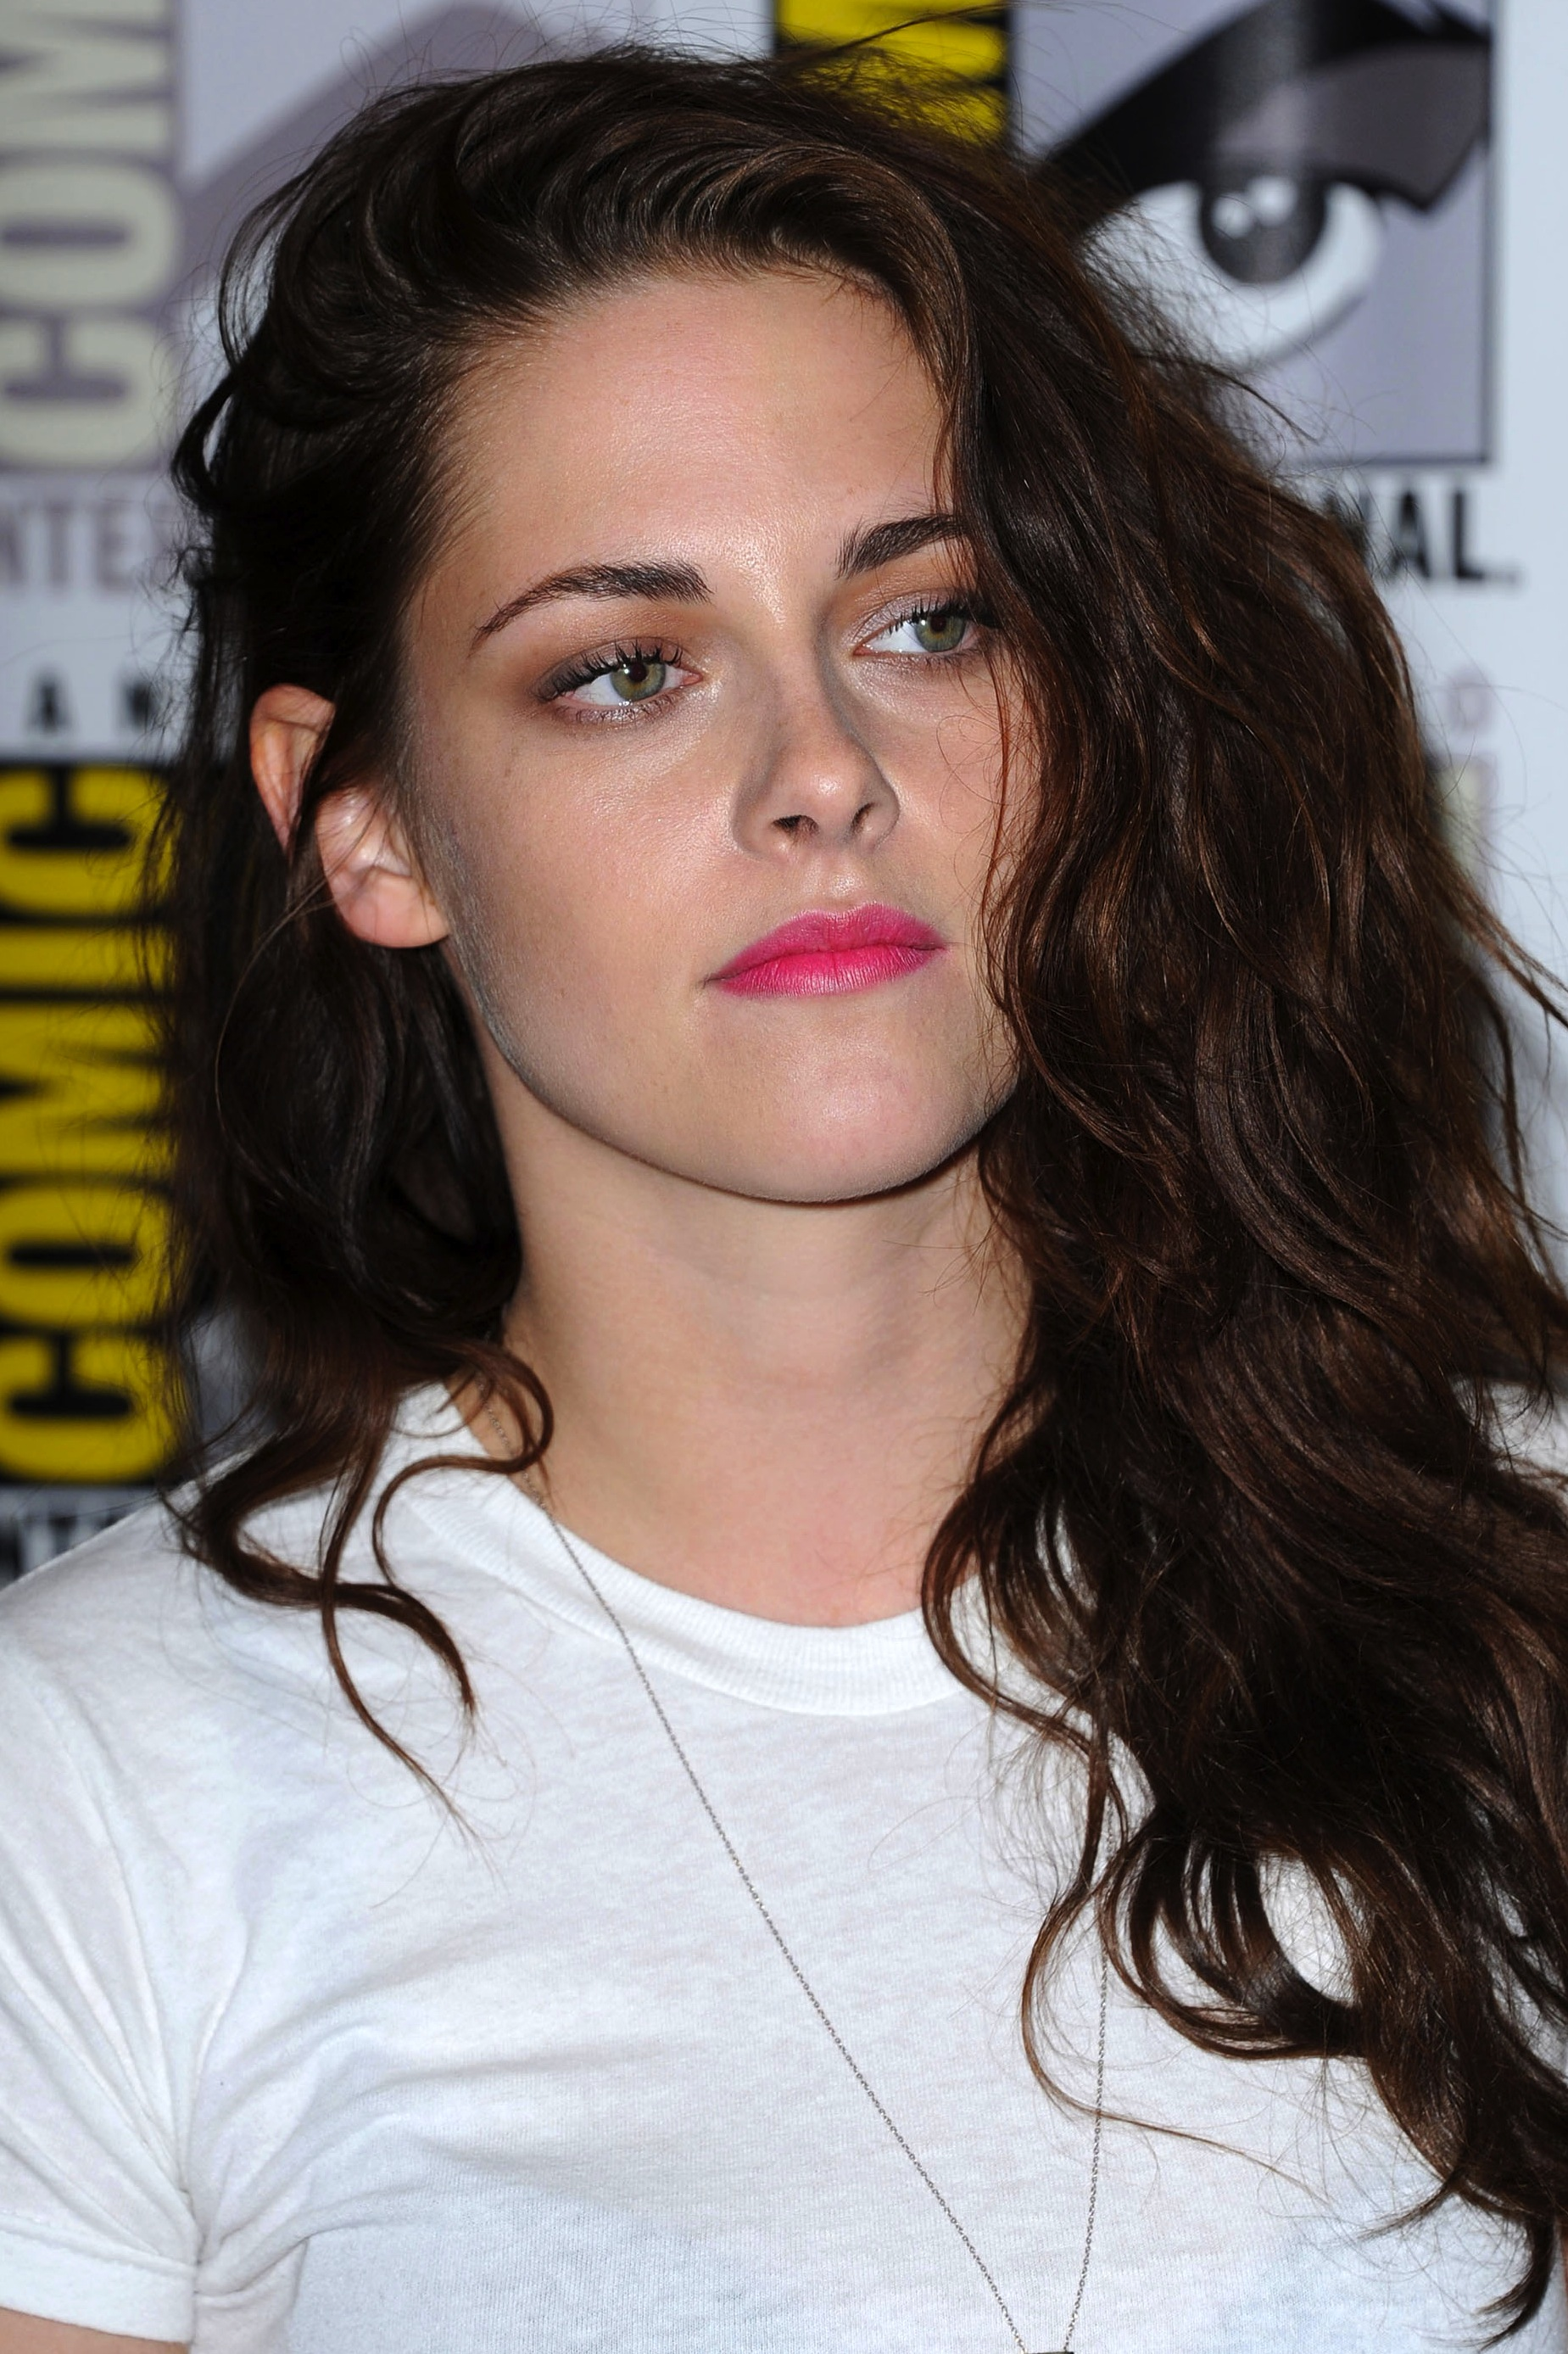 Kristen Stewart Hairstyle – Long, Messy and Carefree. Posted on June 17th,